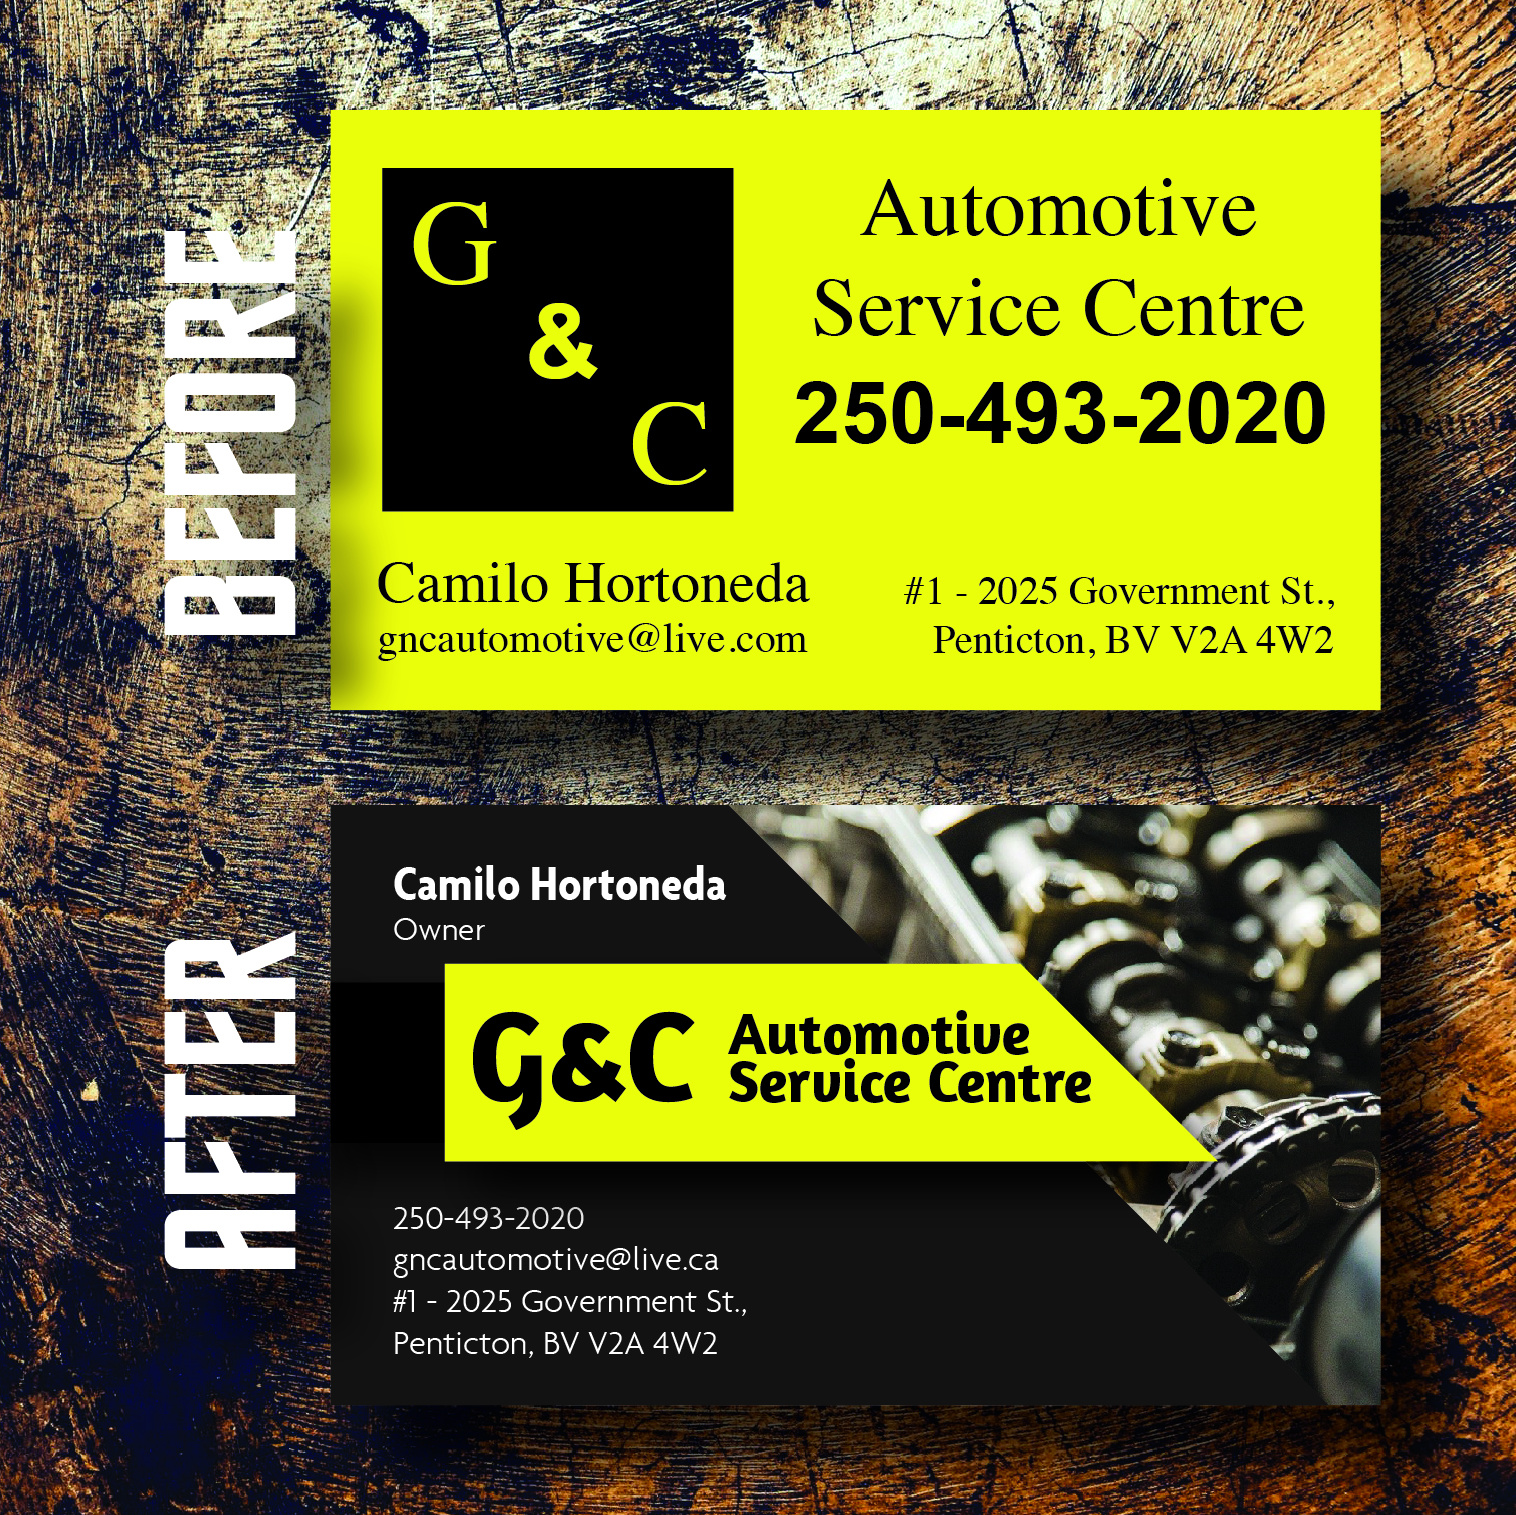 060 GNC Automotive Bcards social post-03